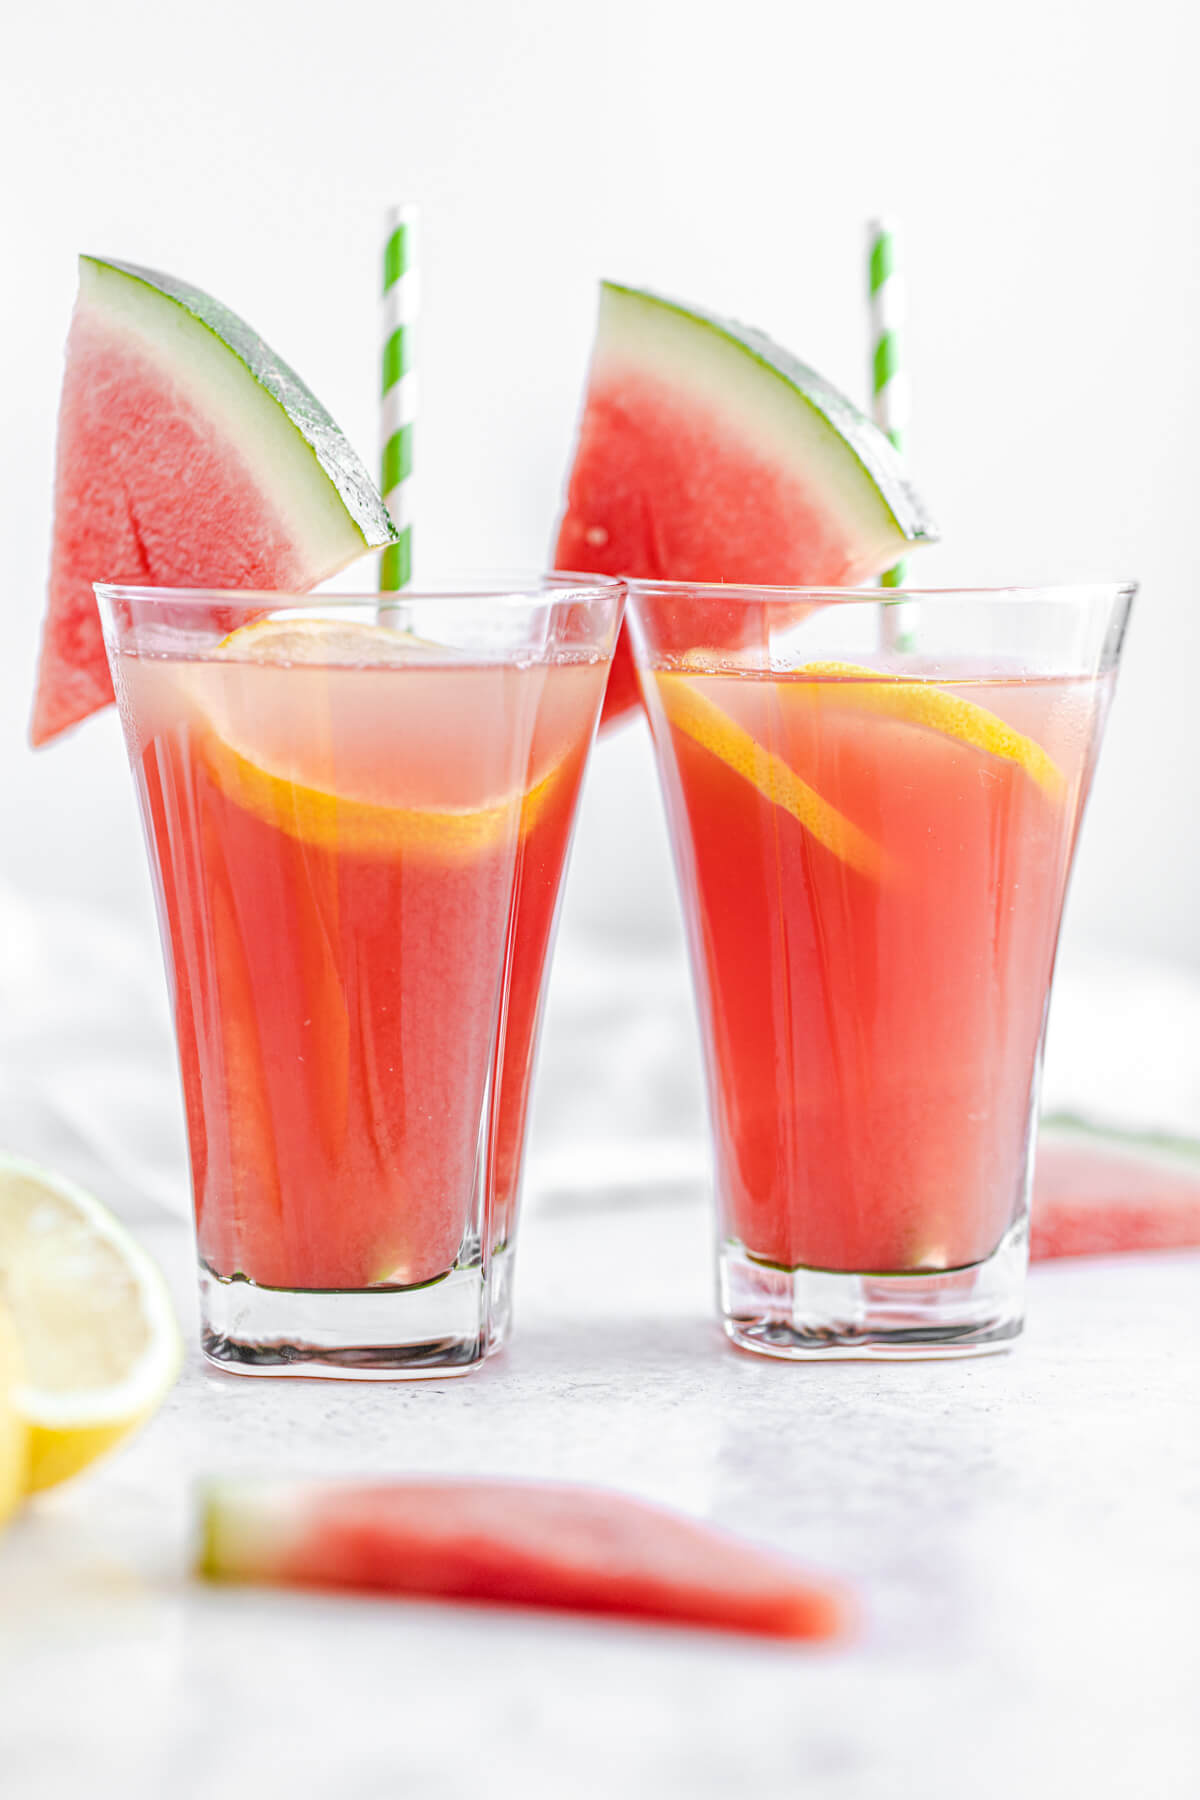 two glasses of lemonade garnished with watermelon wedges and green paper straws